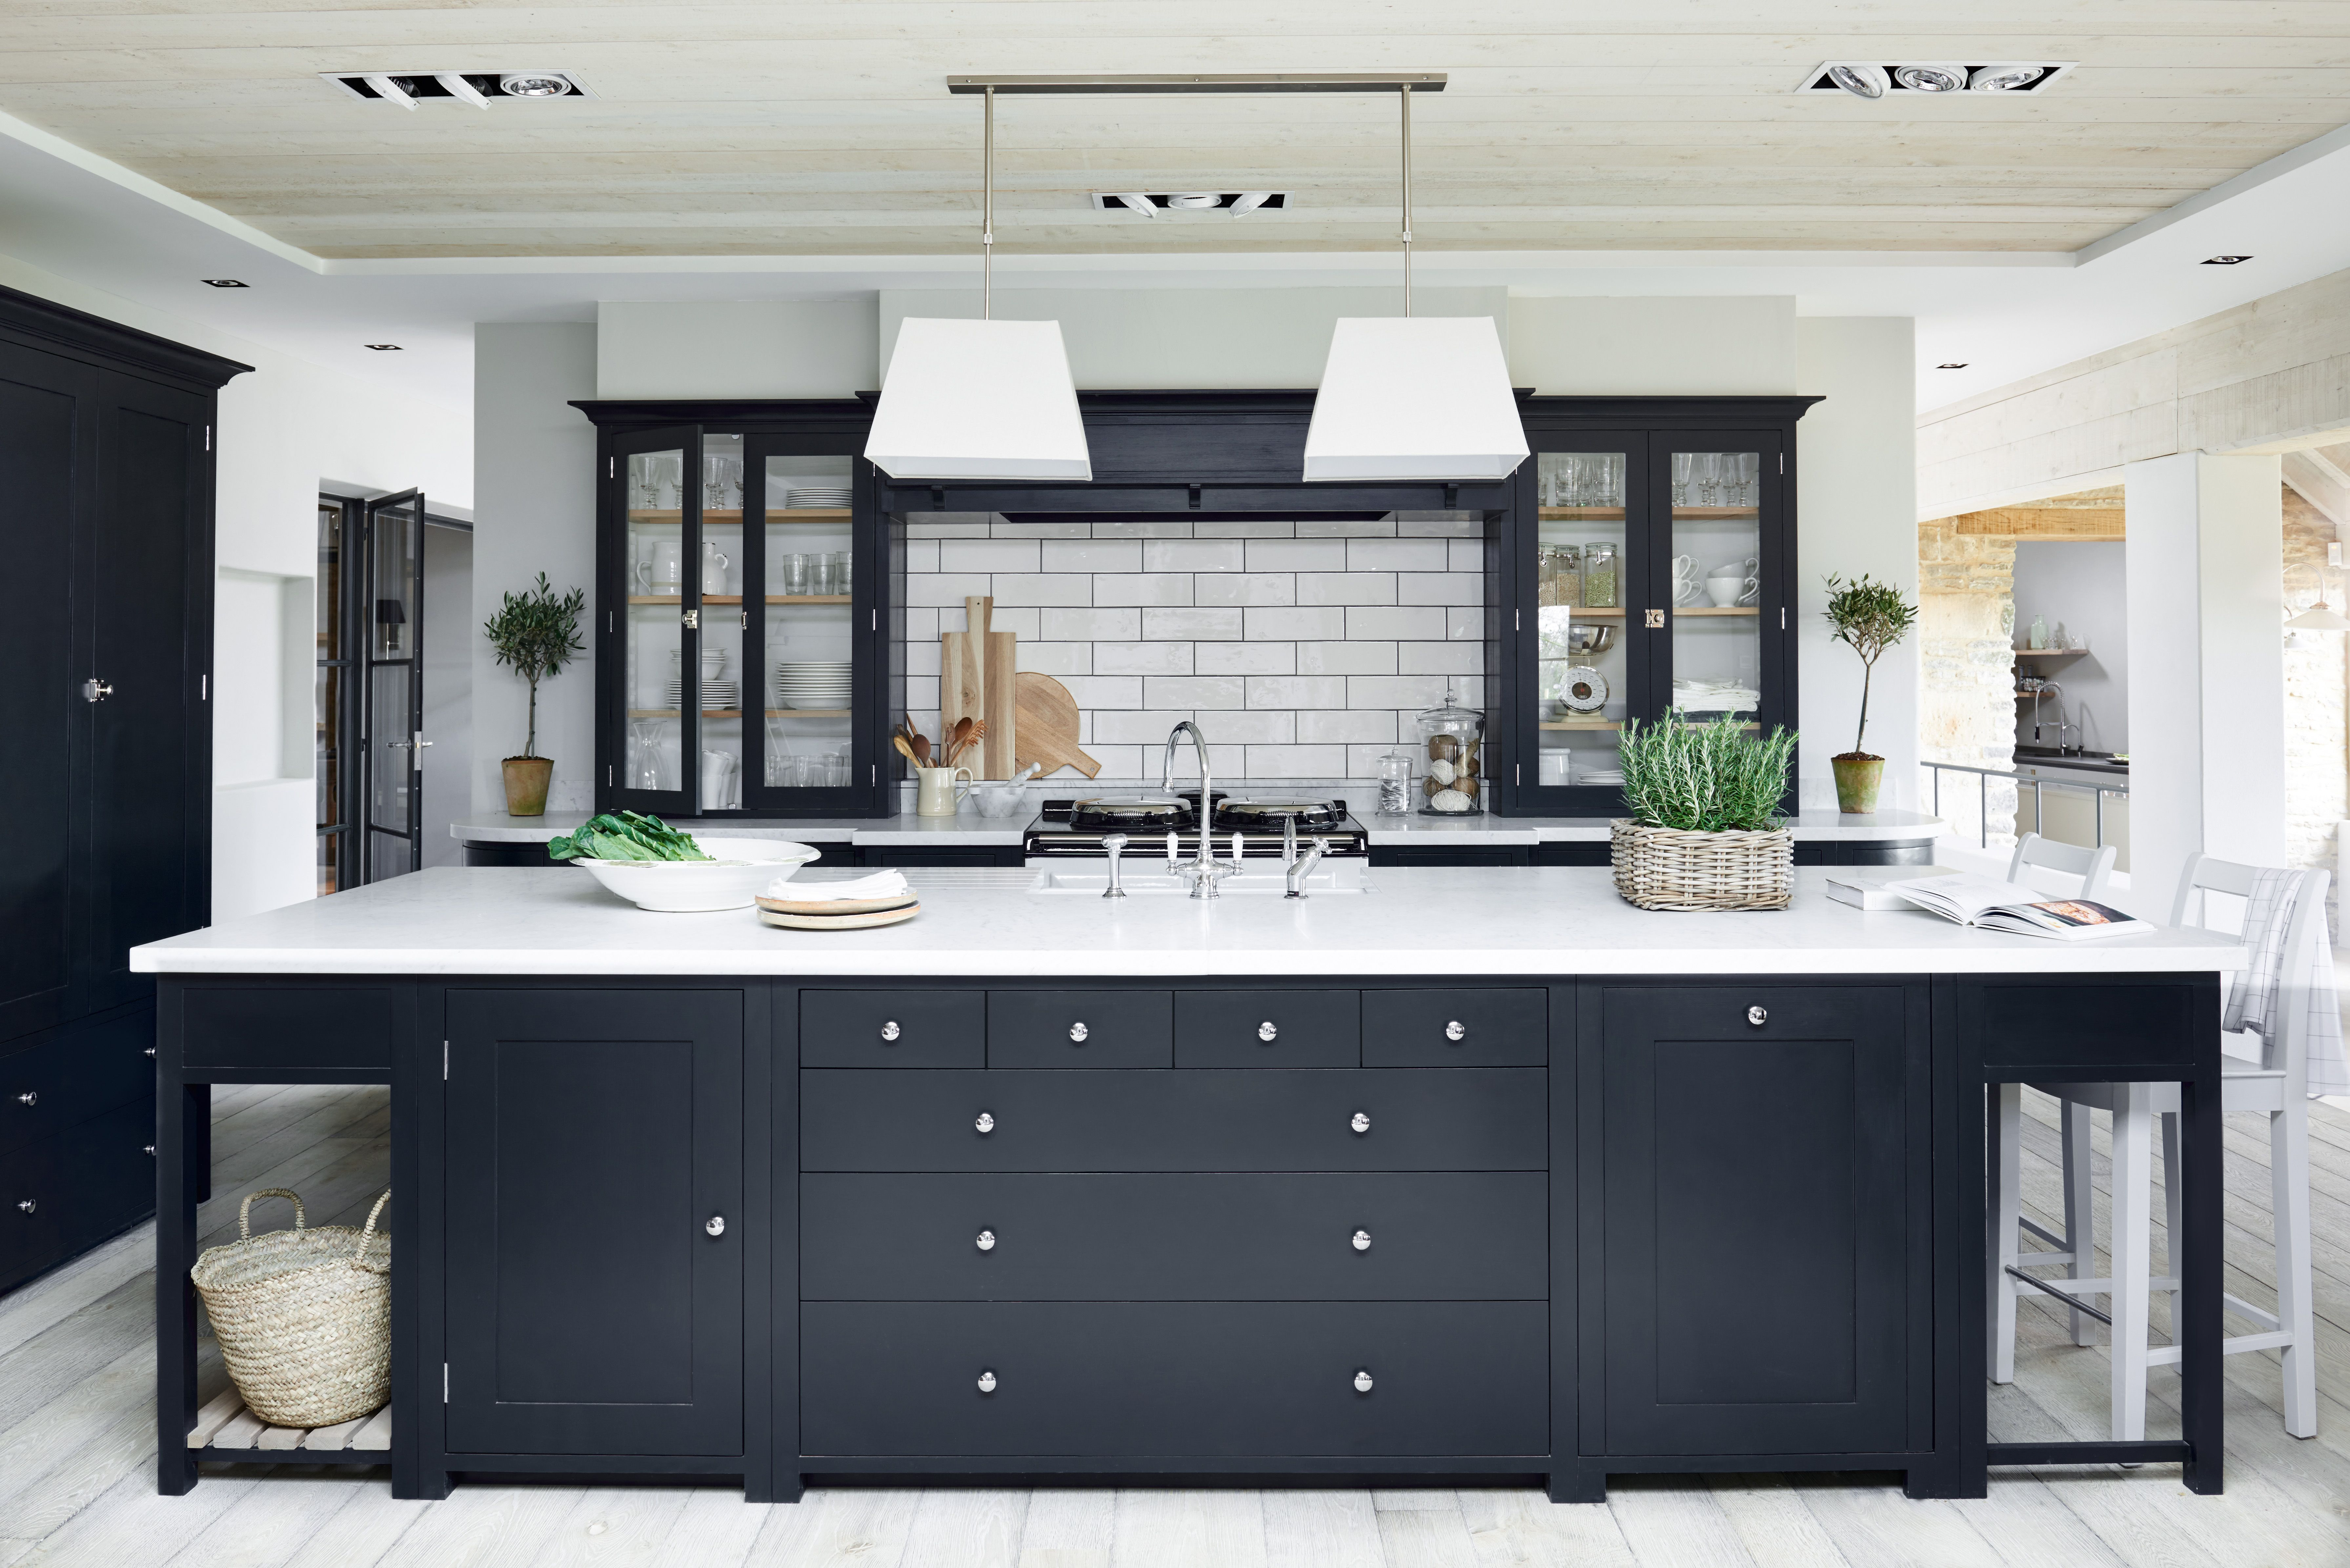 Cuisine Neptune This Standout Modern Country Neptune Kitchen Is Finished In A Bold